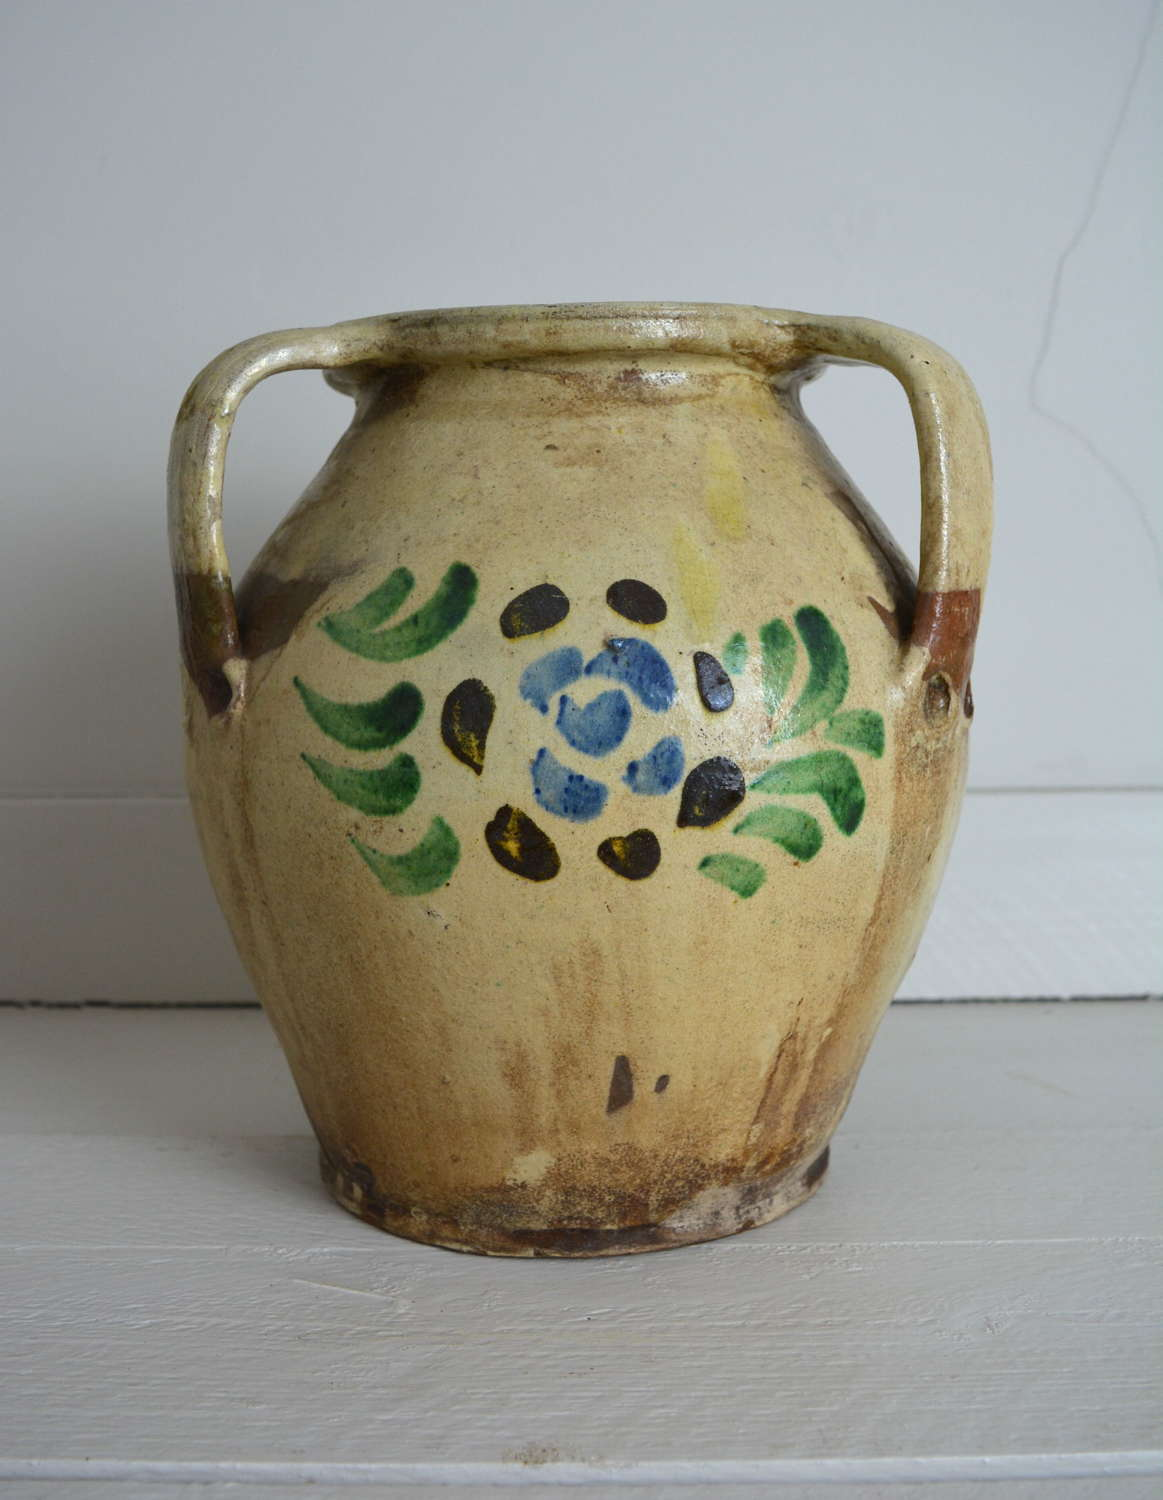 19TH CENTURY SPANISH OLIVE POT